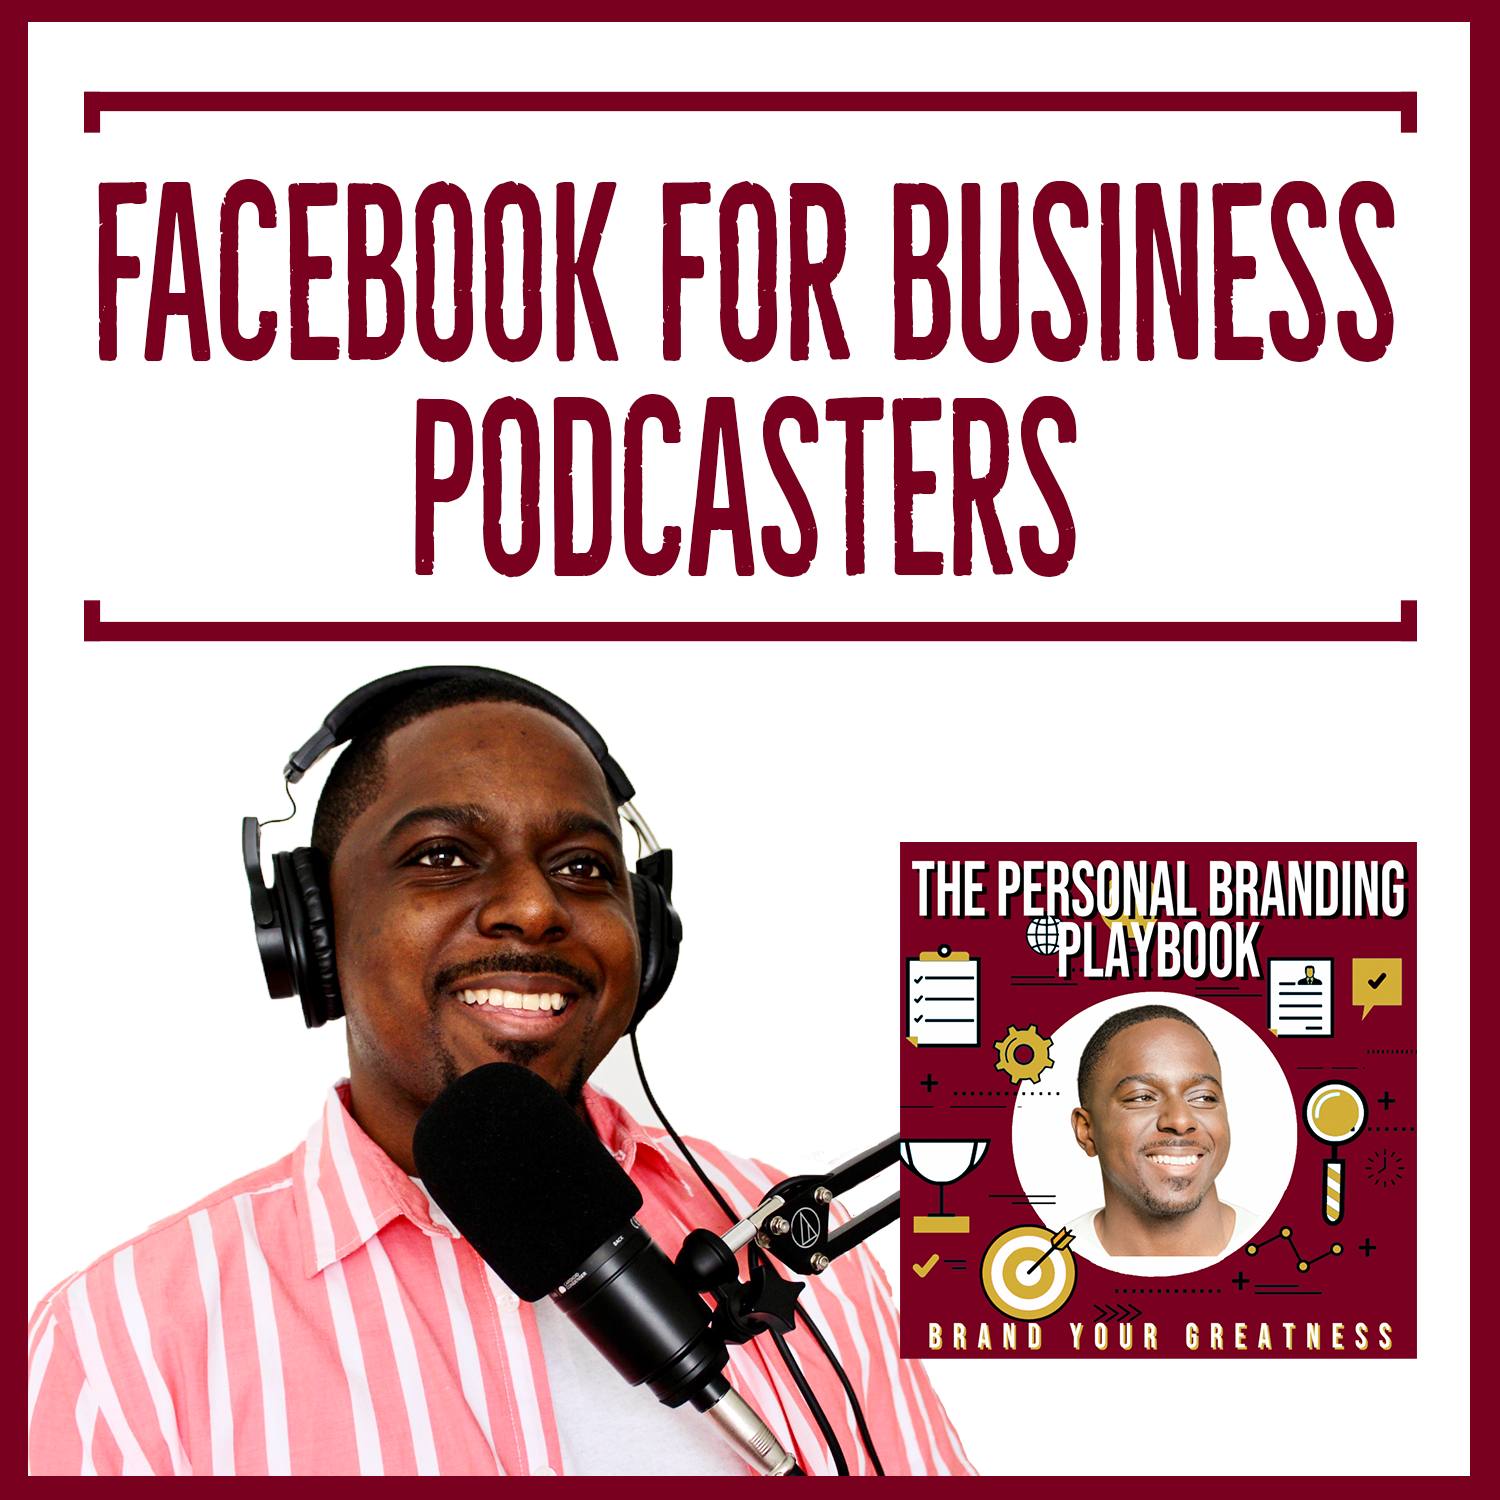 Facebook for Business Podcasters